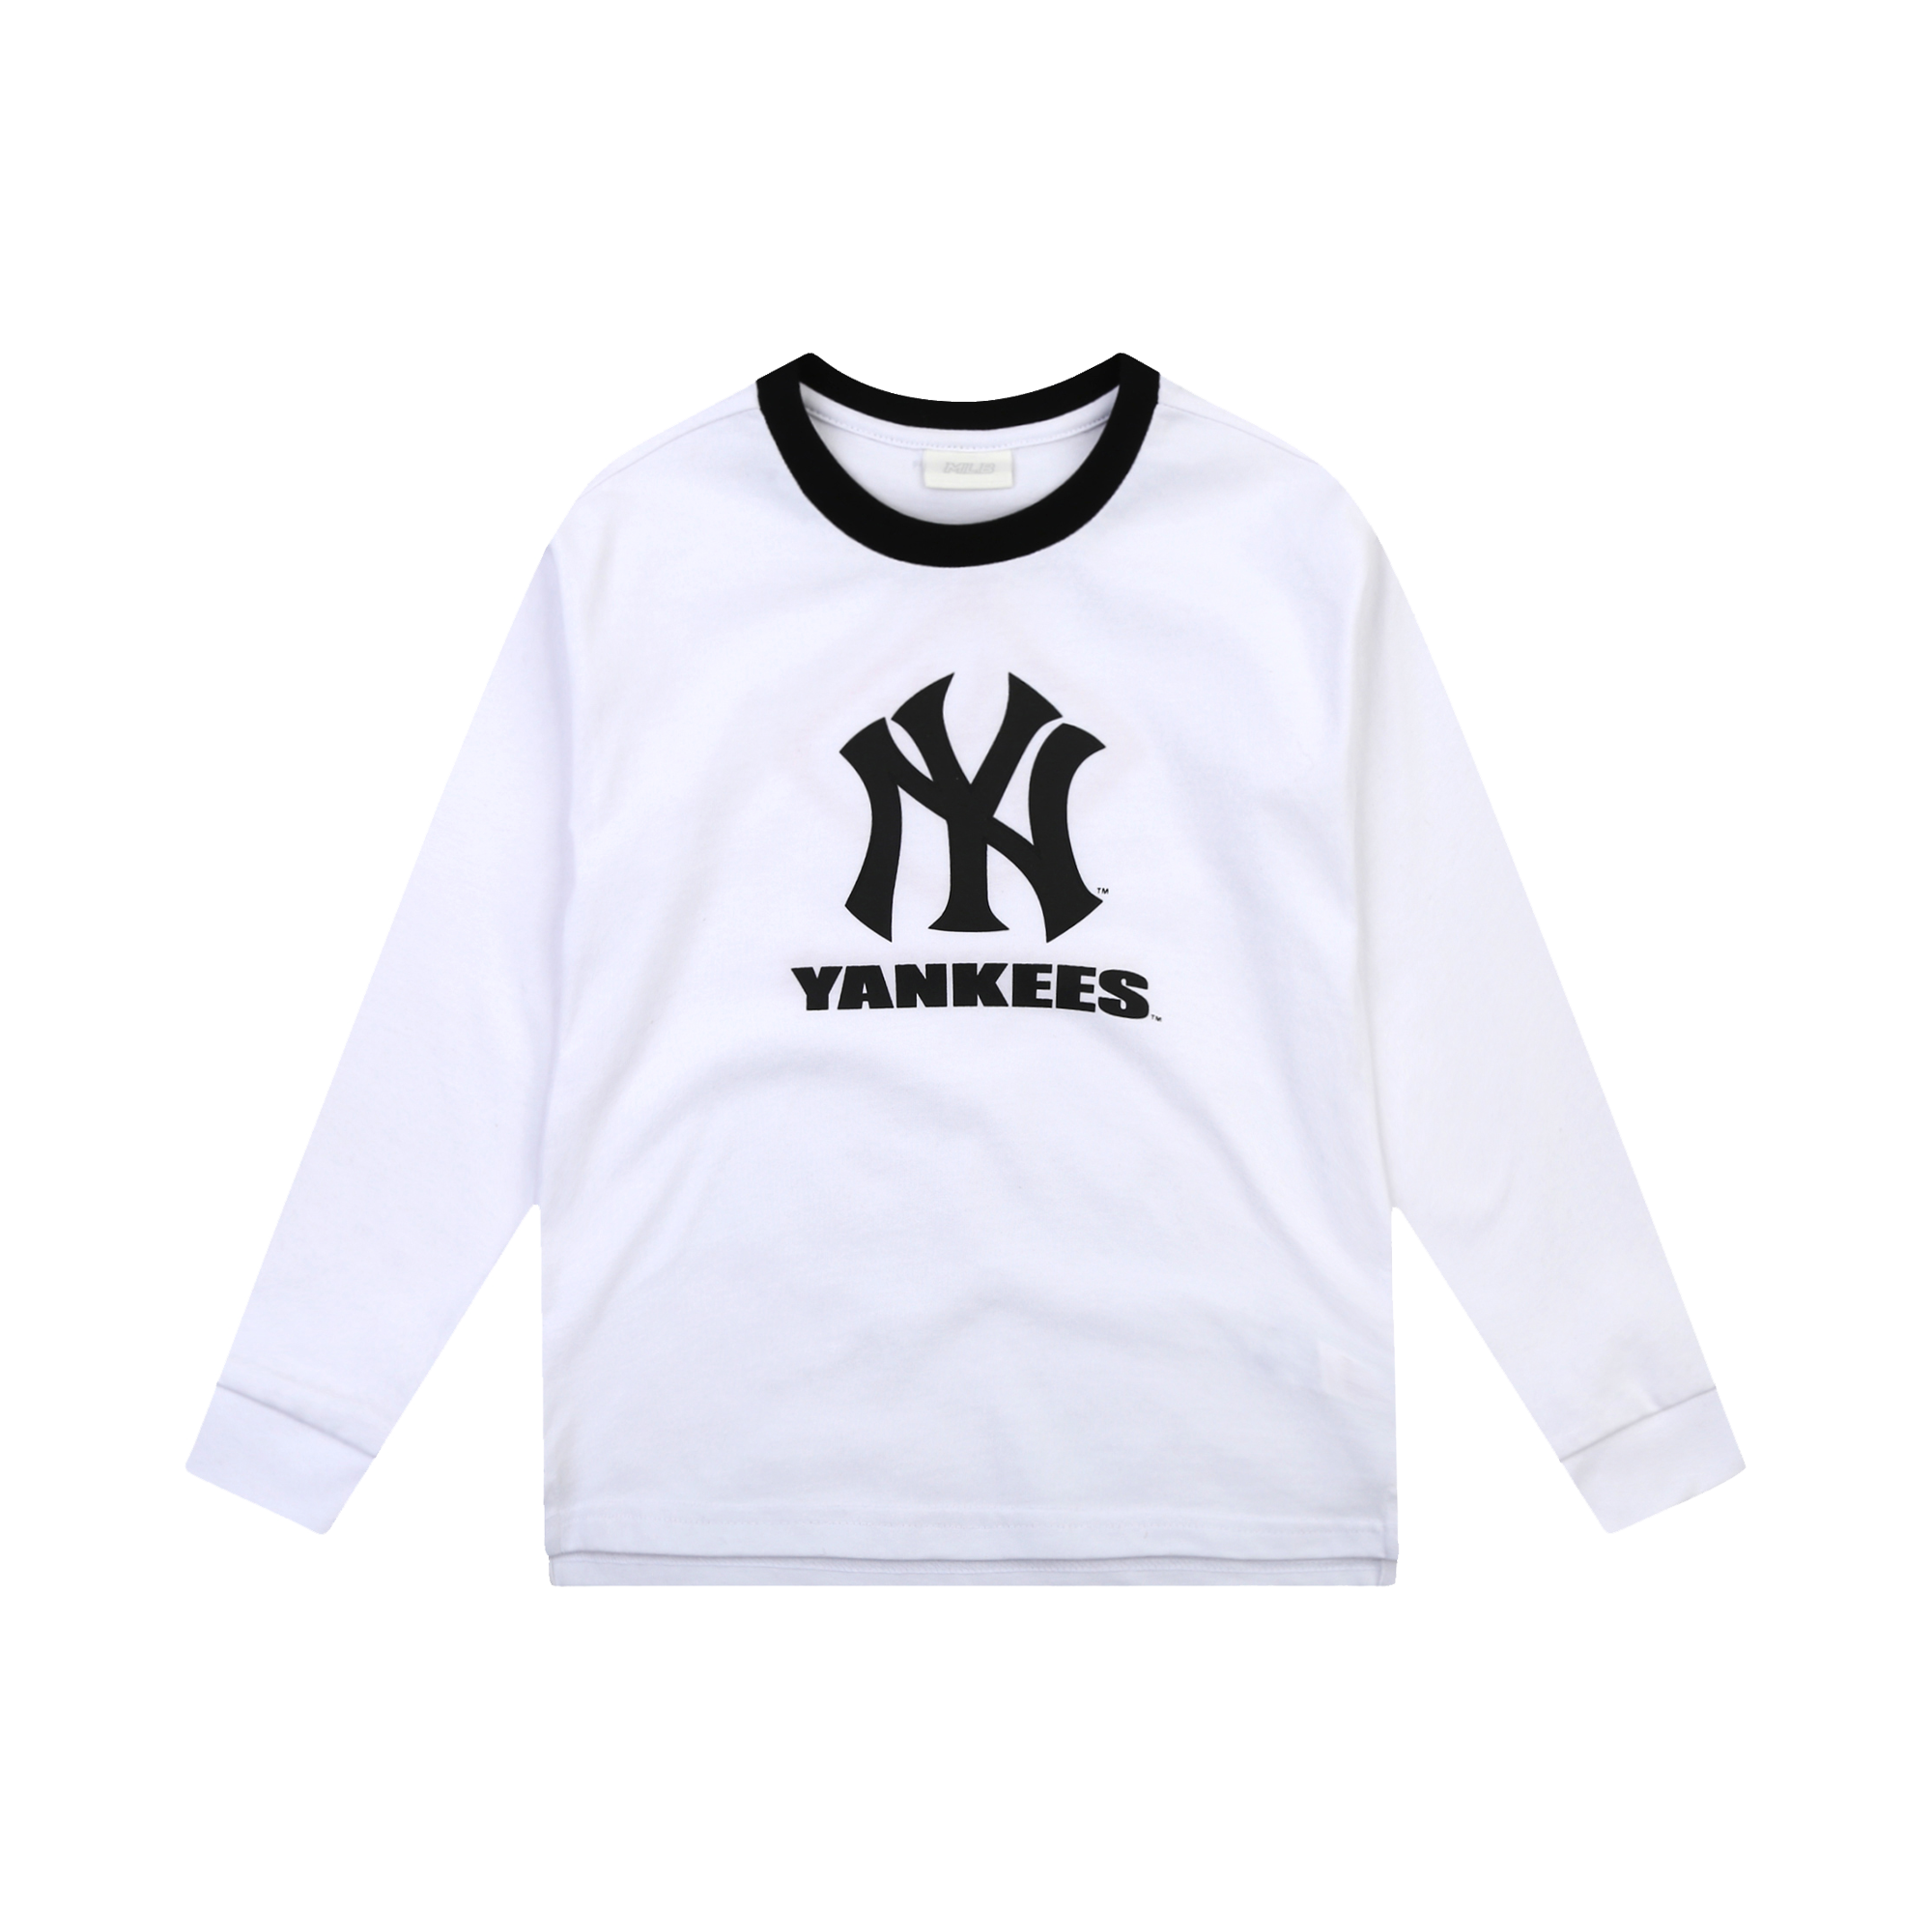 NEW YORK YANKEES UNISEX TWO TONE BICOLOR LOGO T-SHIRT